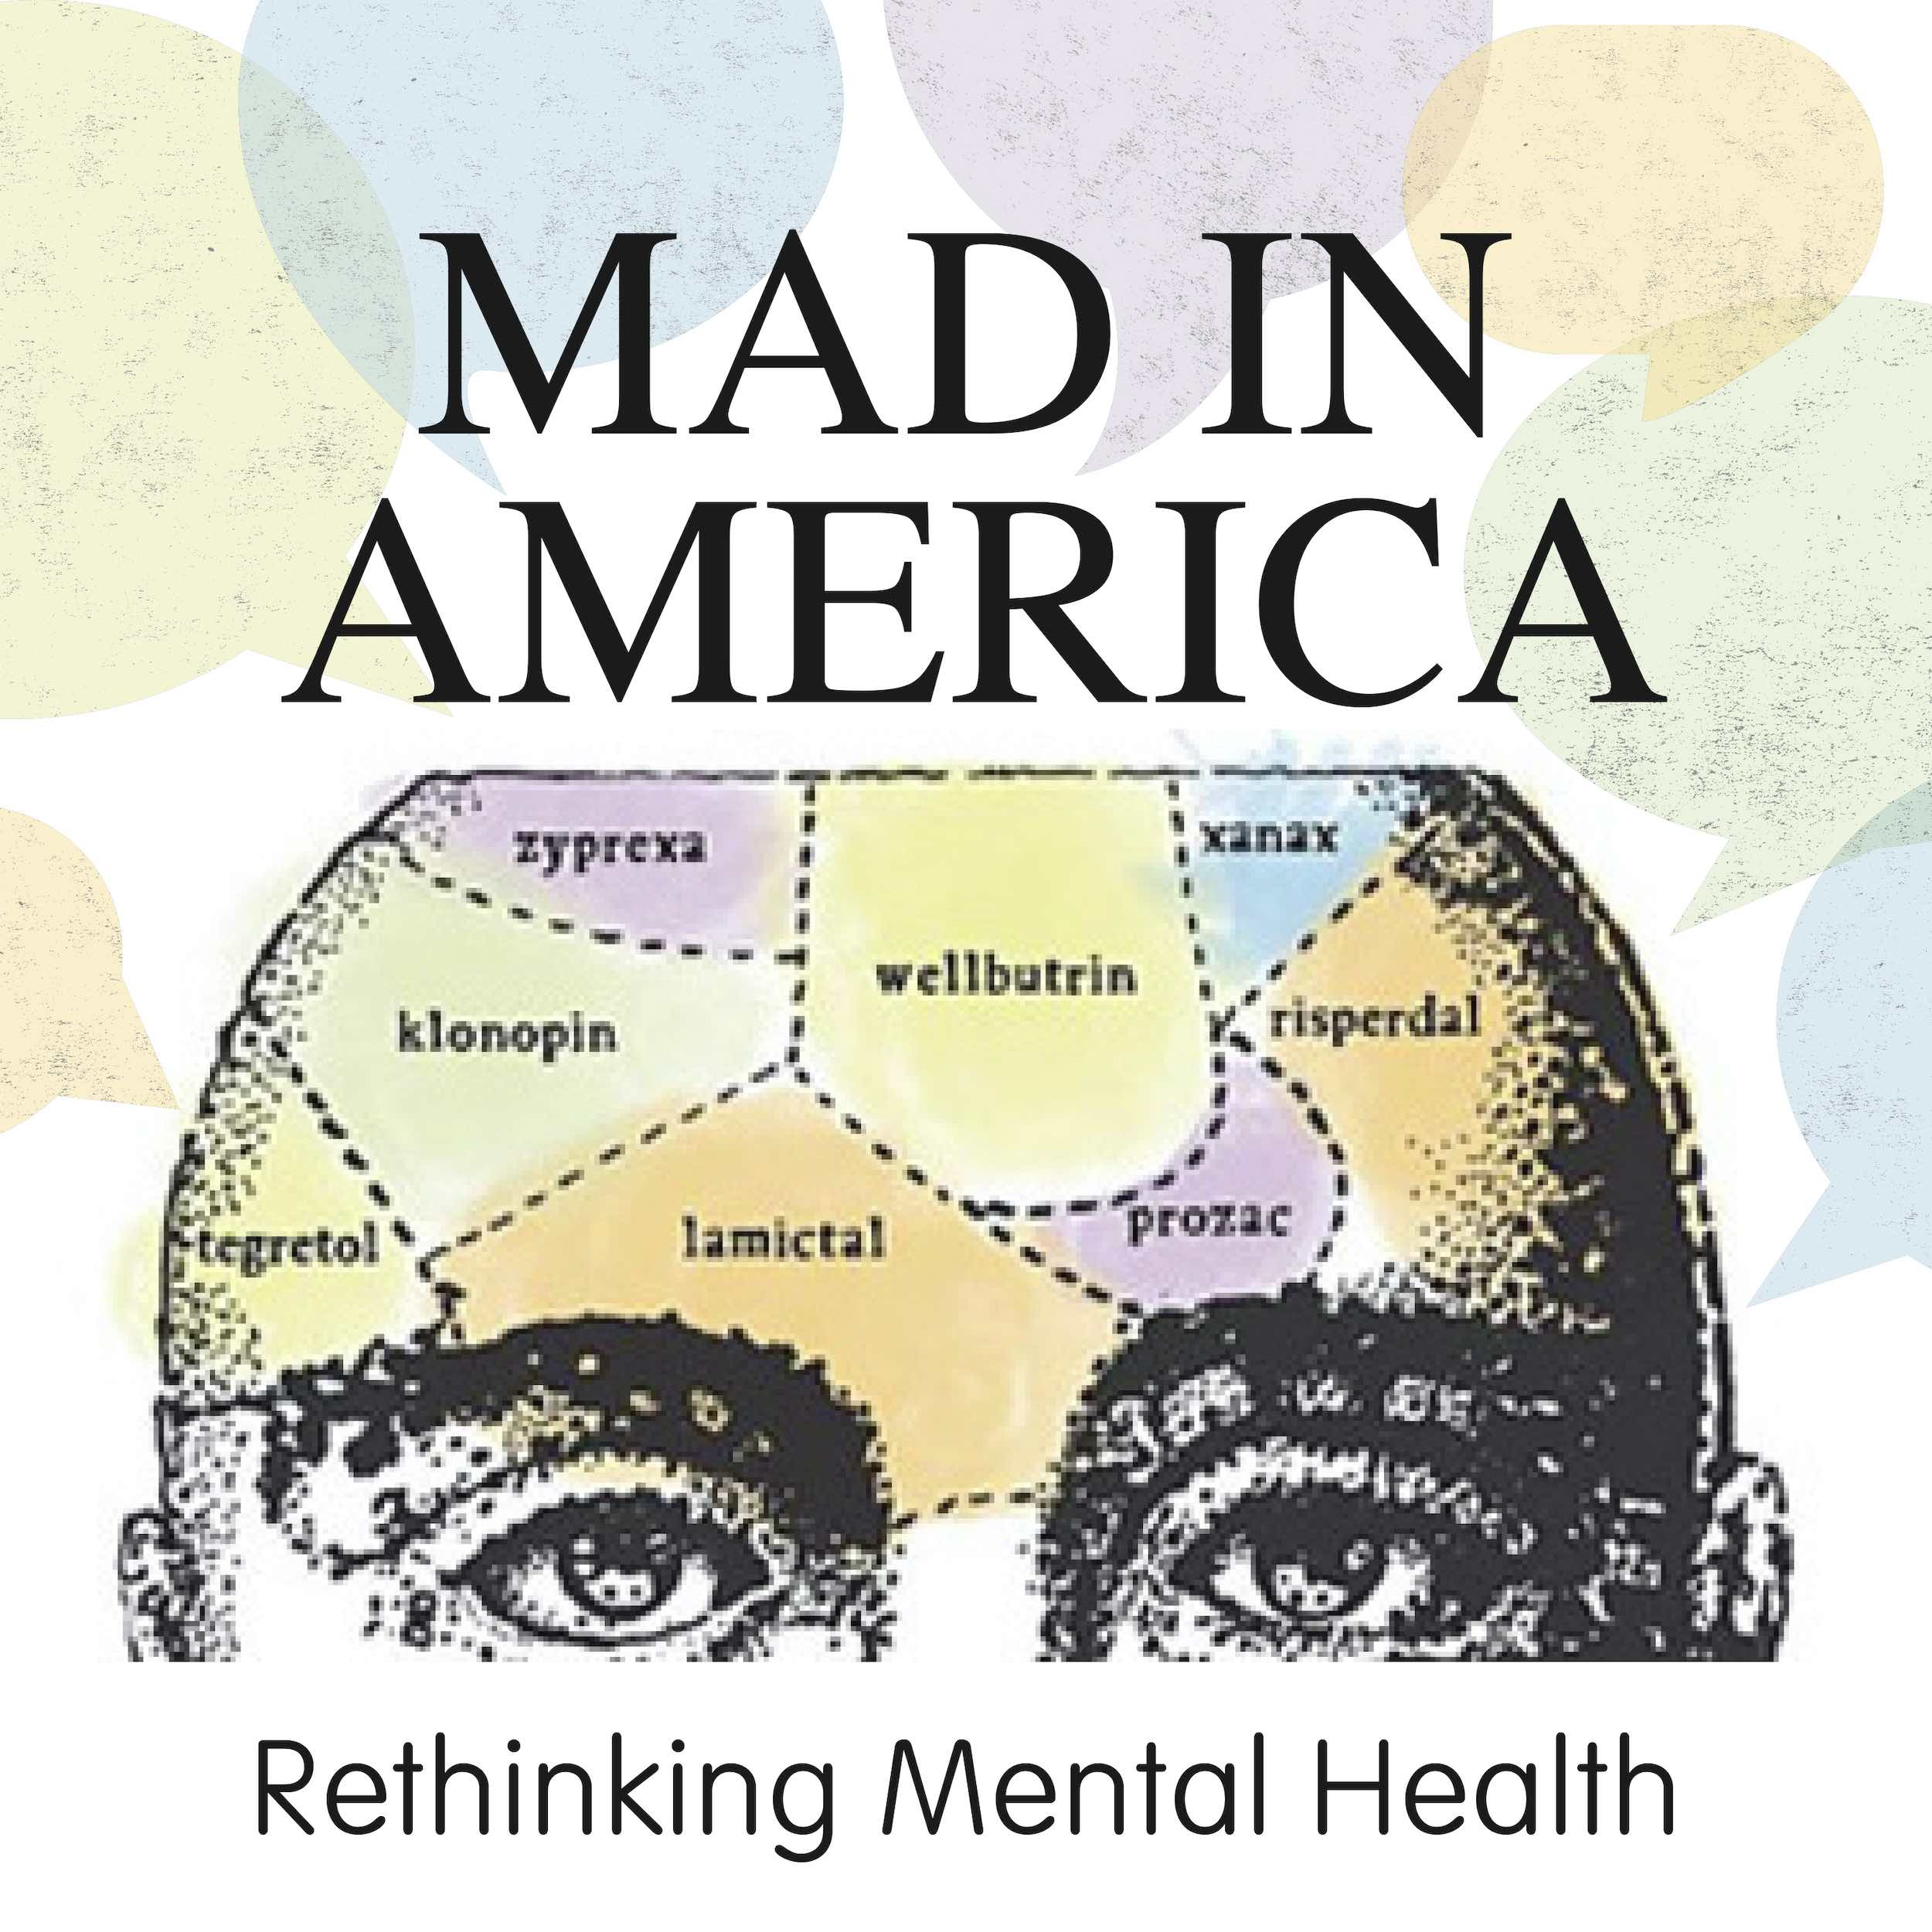 Mad in America: Rethinking Mental Health - Nicole Beurkens – What If This Pandemic Is the Best Thing to Happen to Children with Challenges?